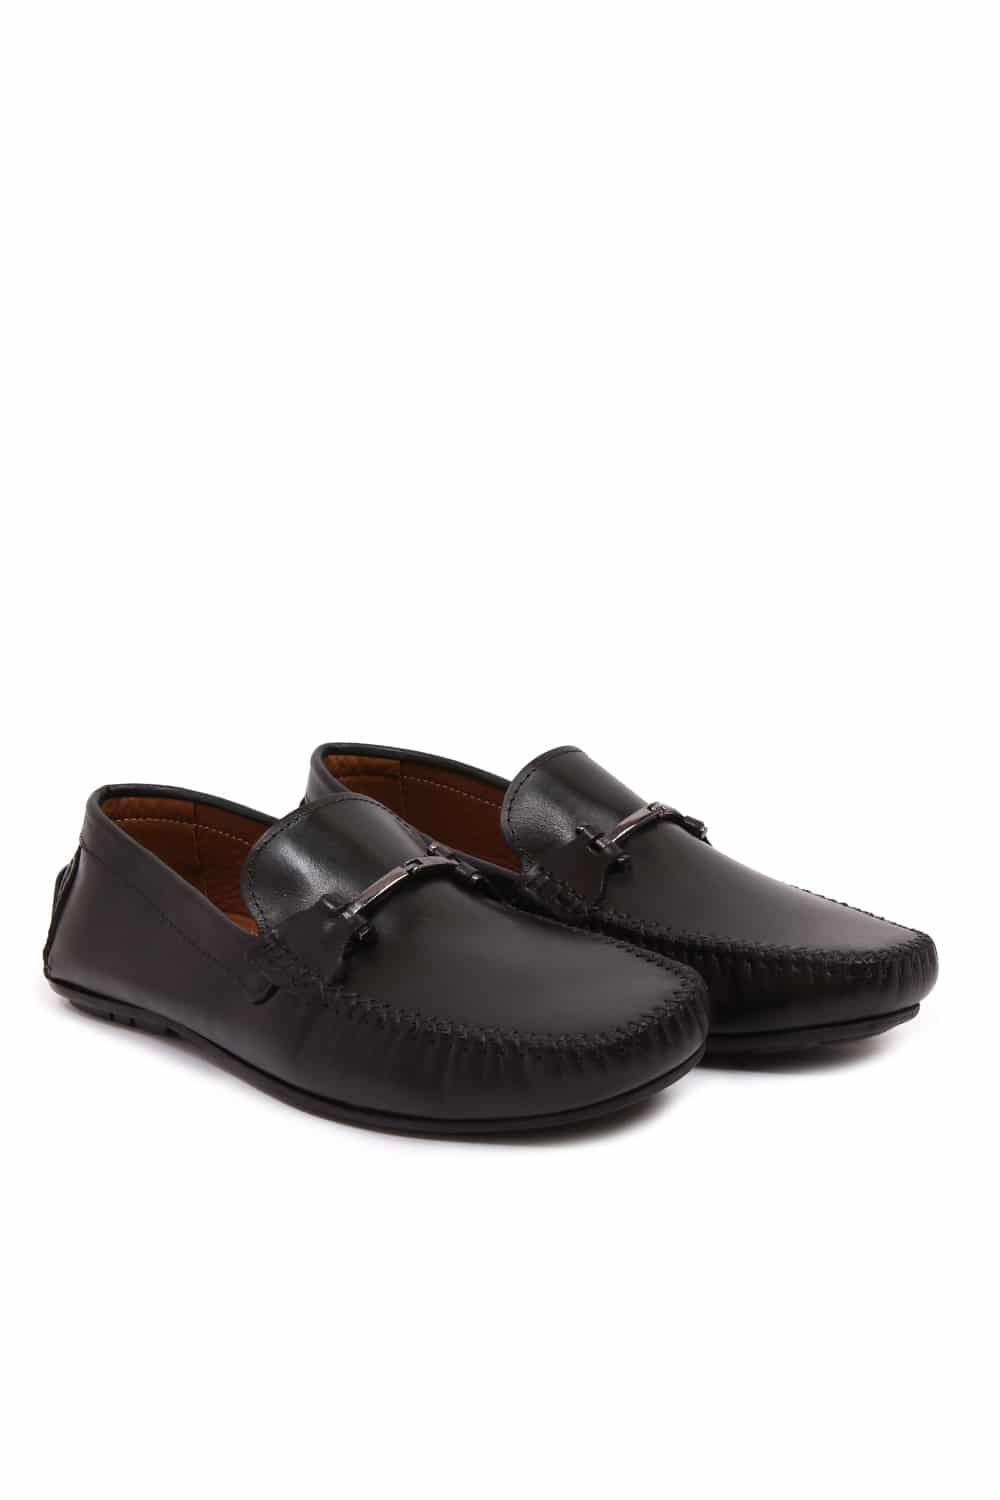 Buckle Black Loafers Shoes